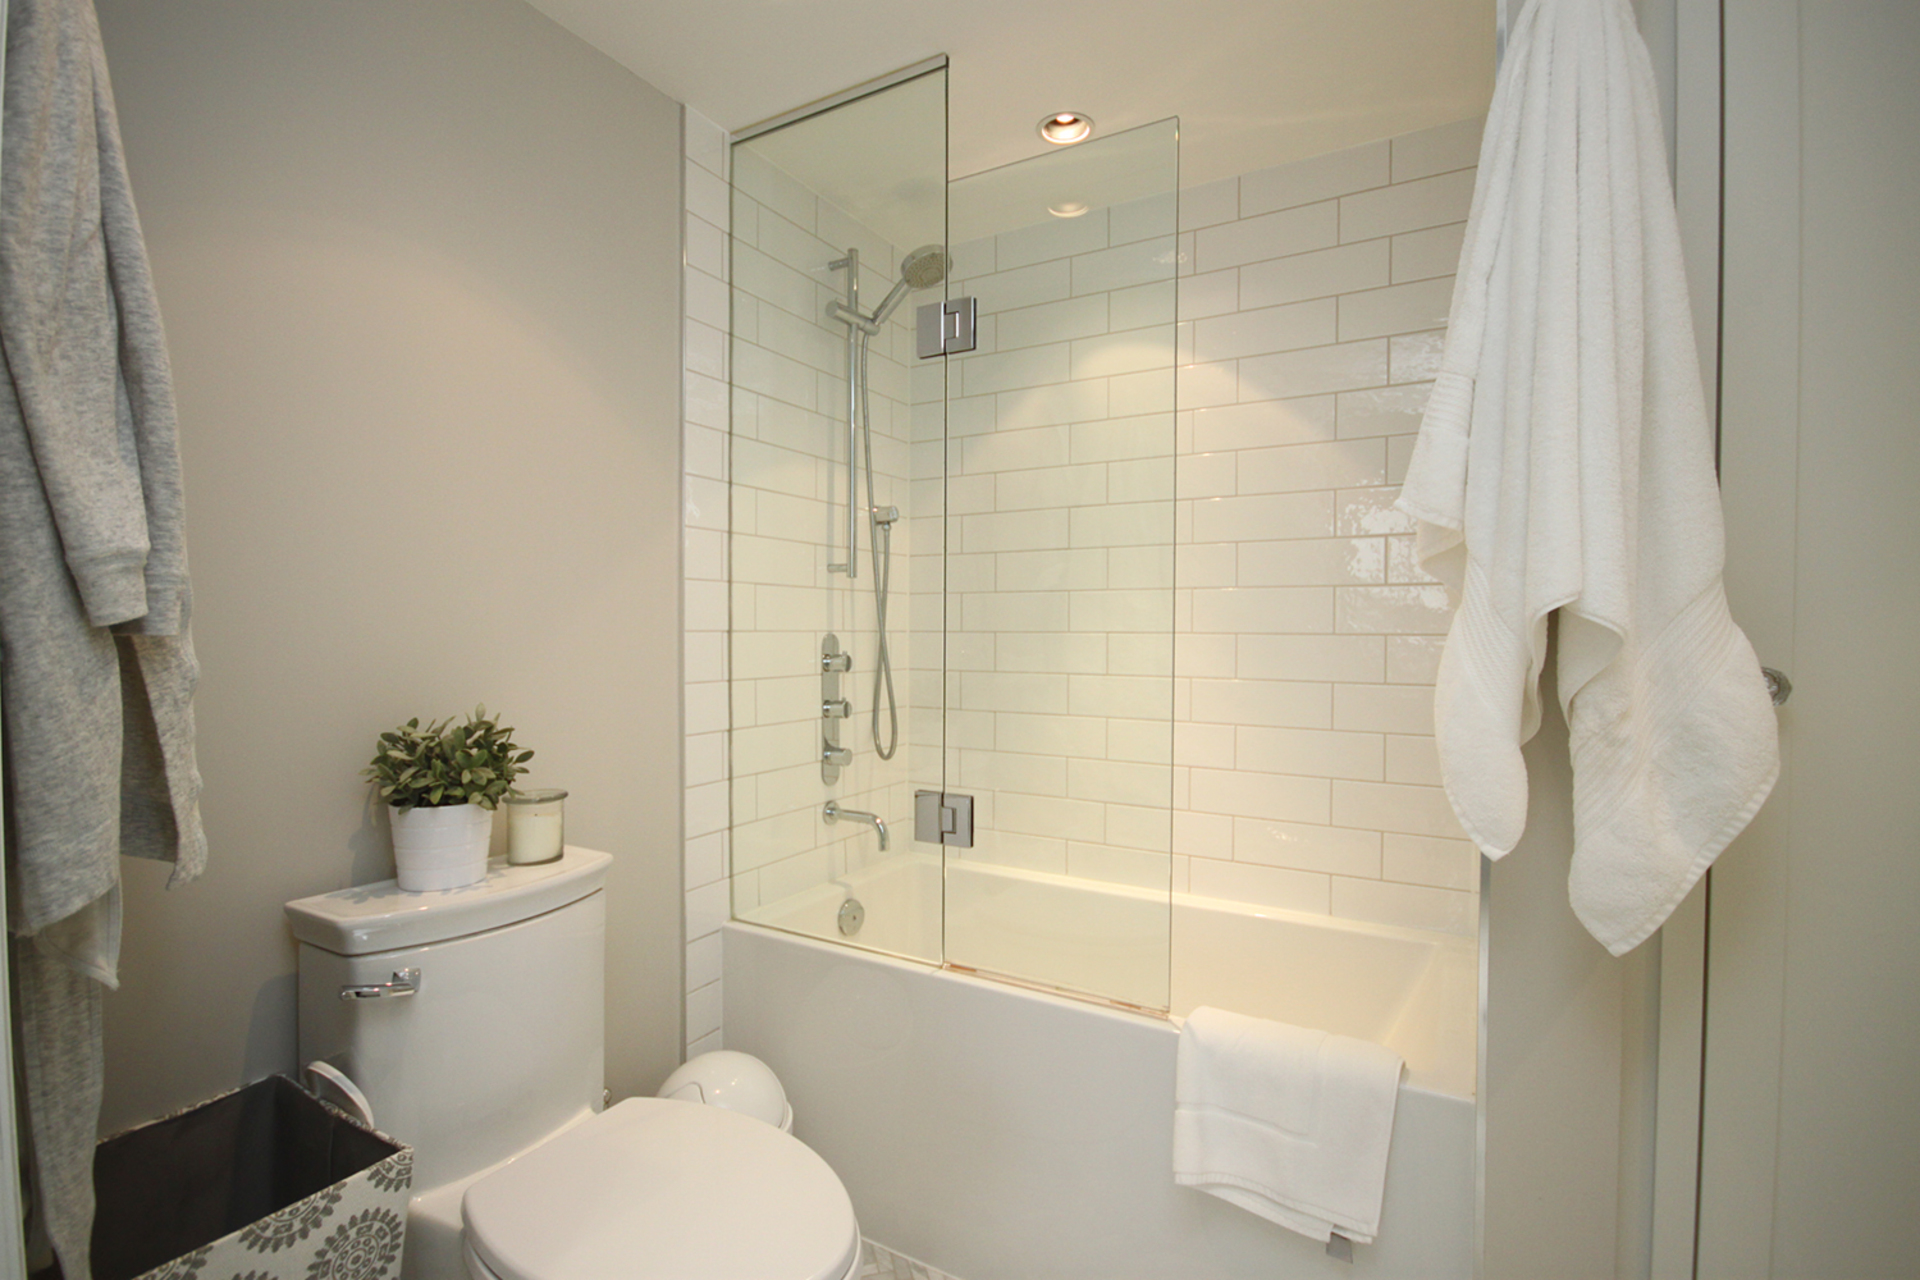 4 Piece Ensuite Bathroom at PH9 - 2727 Yonge Street, Lawrence Park South, Toronto